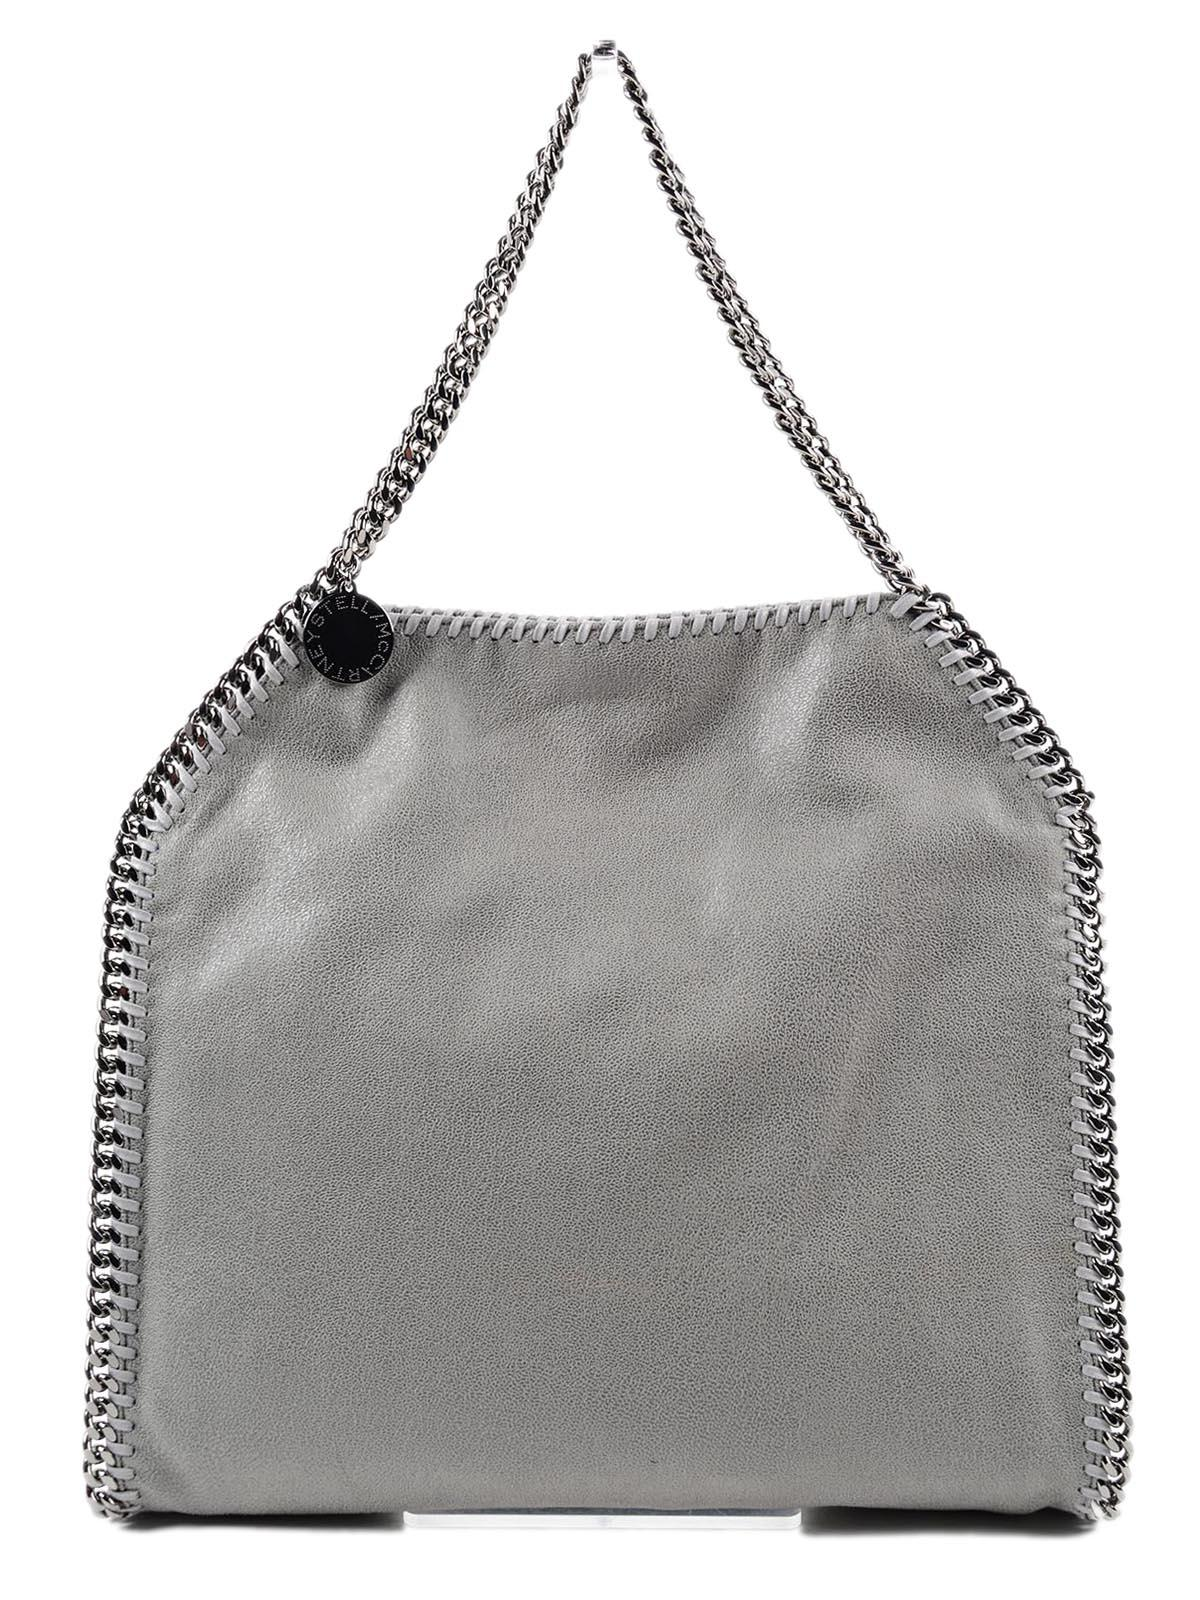 48ea1c81722 Stella McCartney. Women s Gray Shoulder Bag Falabella Small Tote shaggy Deer